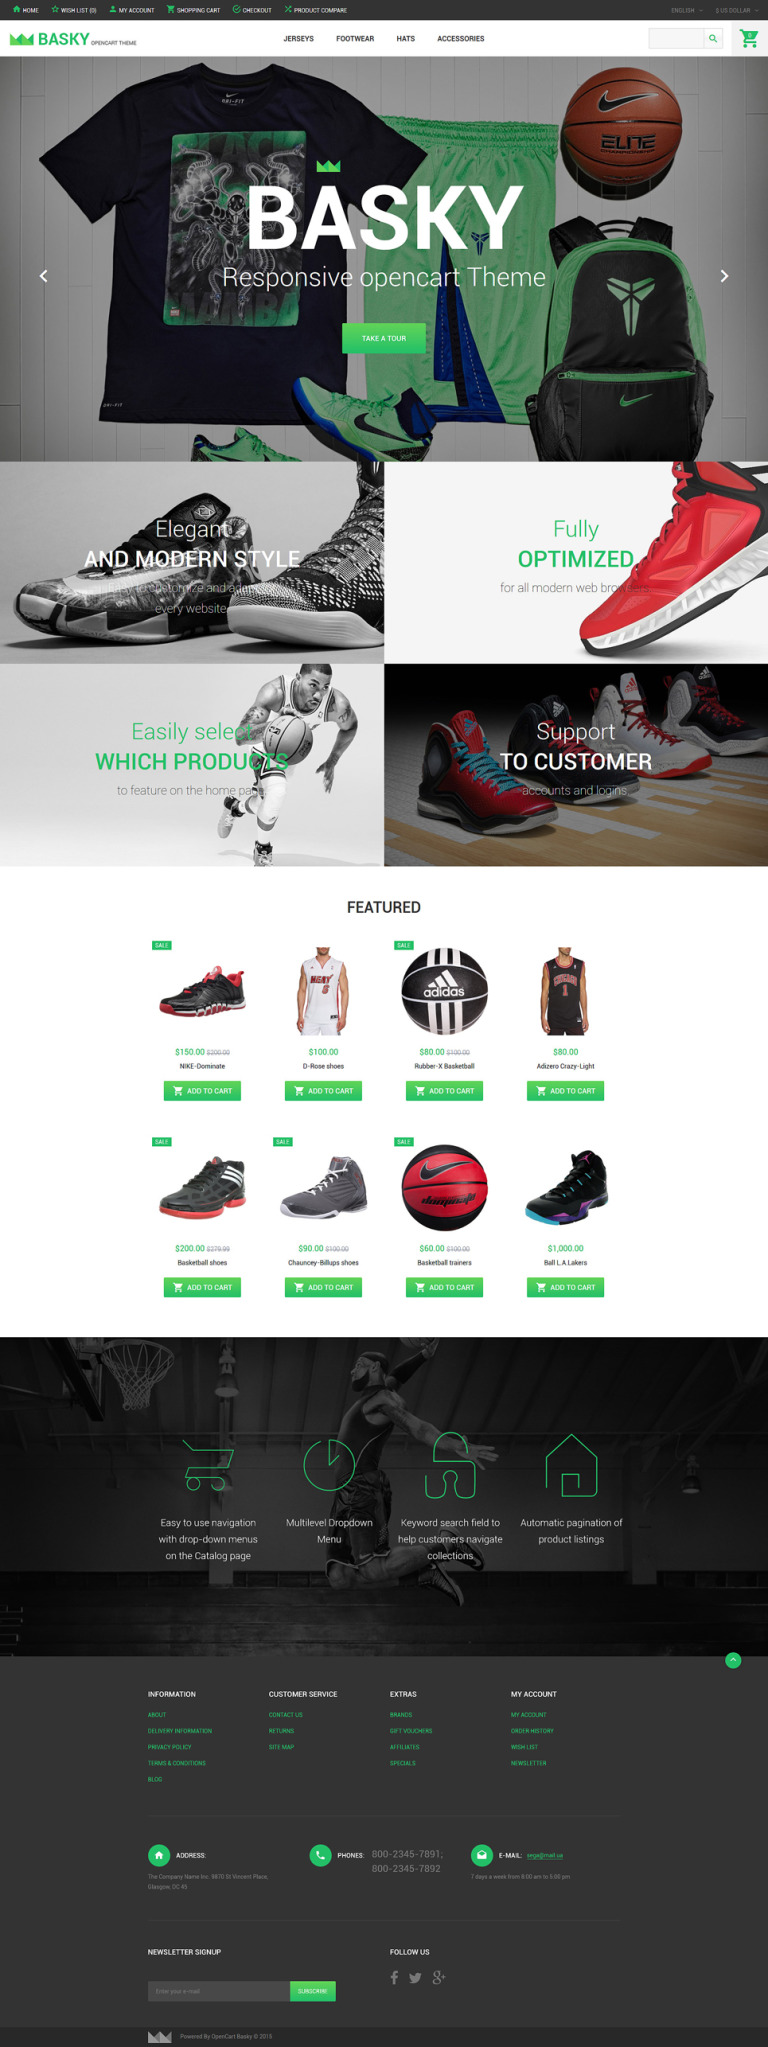 Basky OpenCart Template New Screenshots BIG